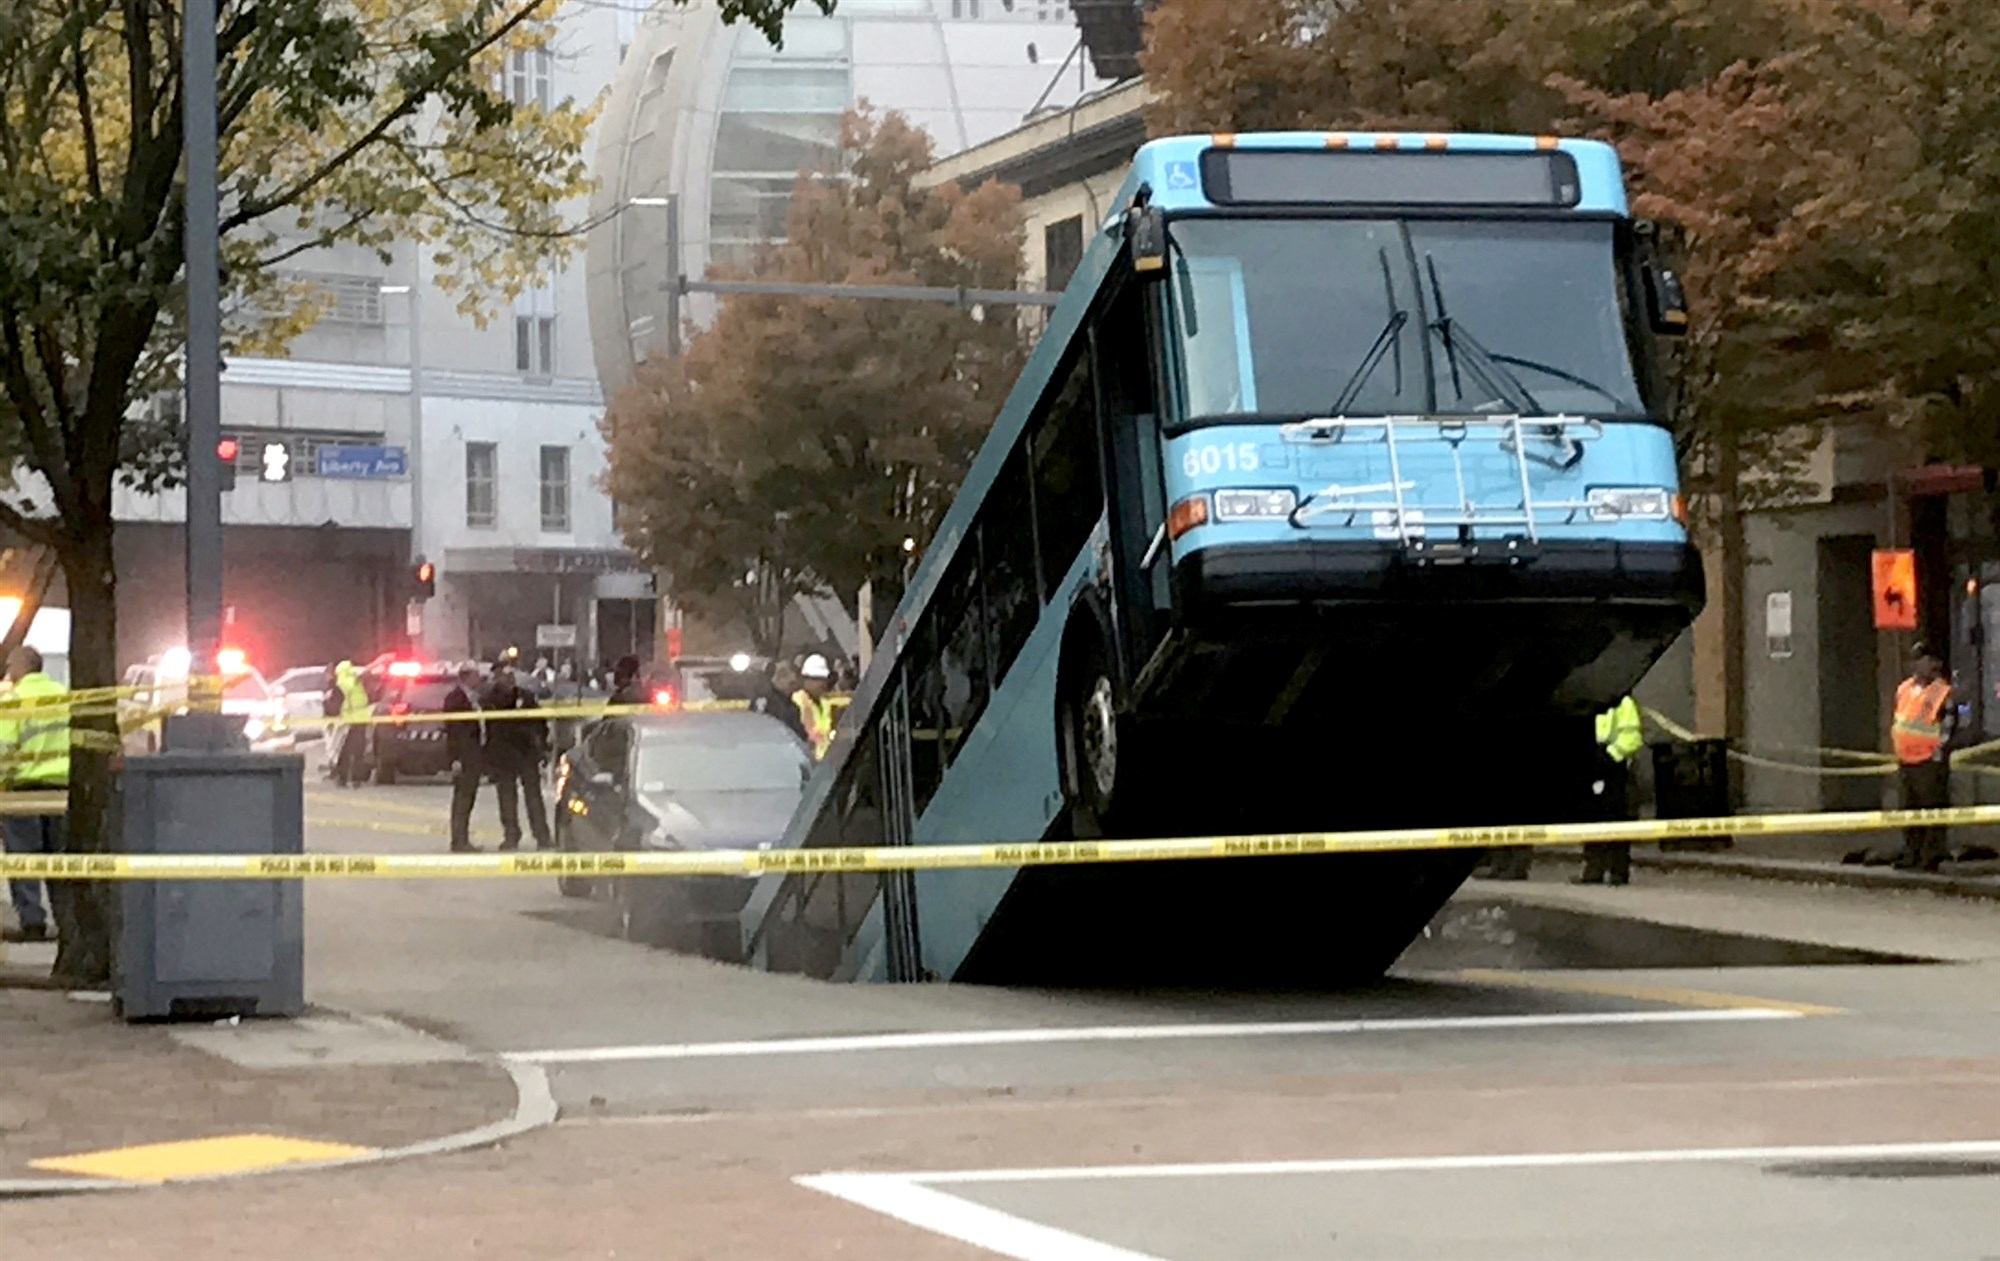 Surreal images show city bus swallowed by sinkhole in downtown Pittsburgh Authorities expect it will take hours to extract the bus as crews attempt to turn off power lines directly beneath the bus.